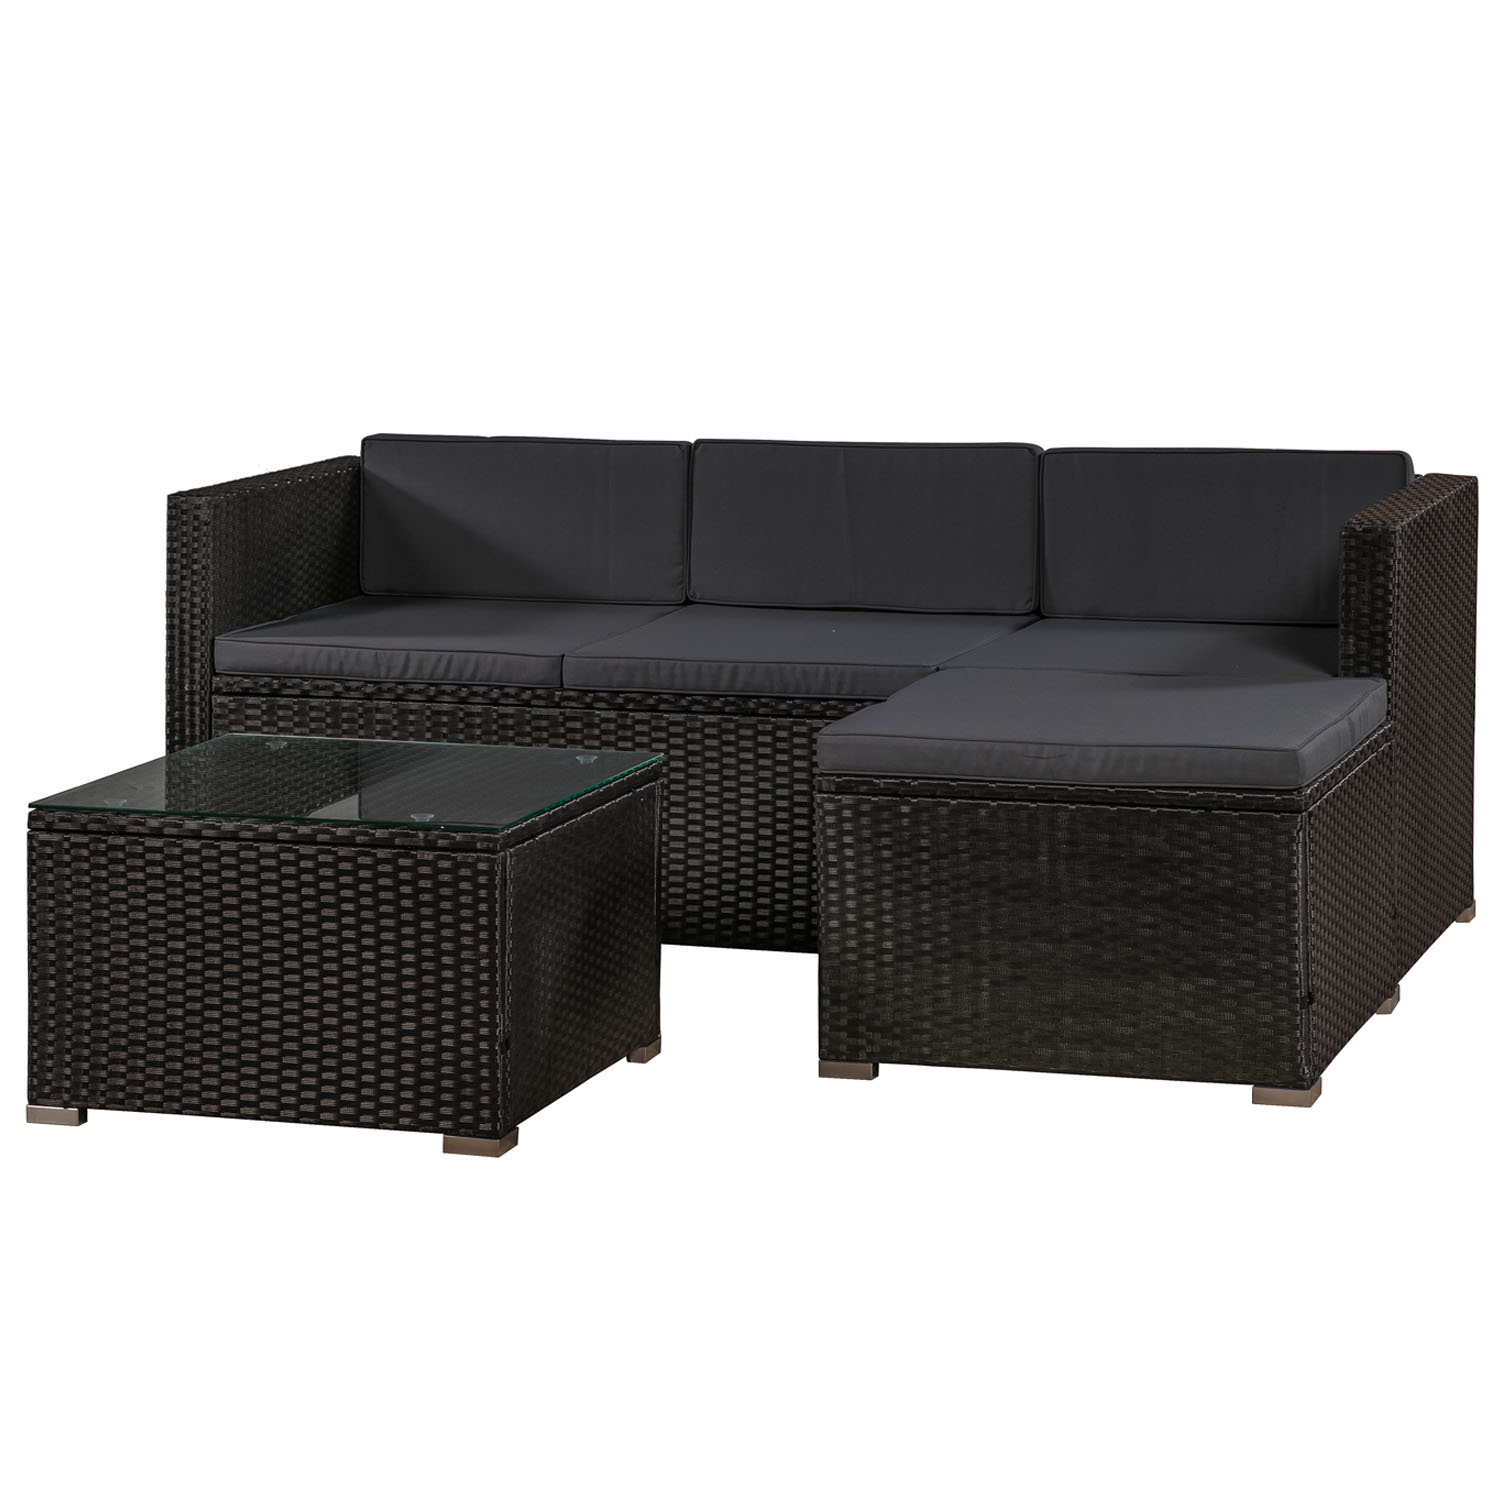 polyrattan lounge sitzgarnitur punta cana m schwarz mit bez gen in dunkelgrau juskys. Black Bedroom Furniture Sets. Home Design Ideas